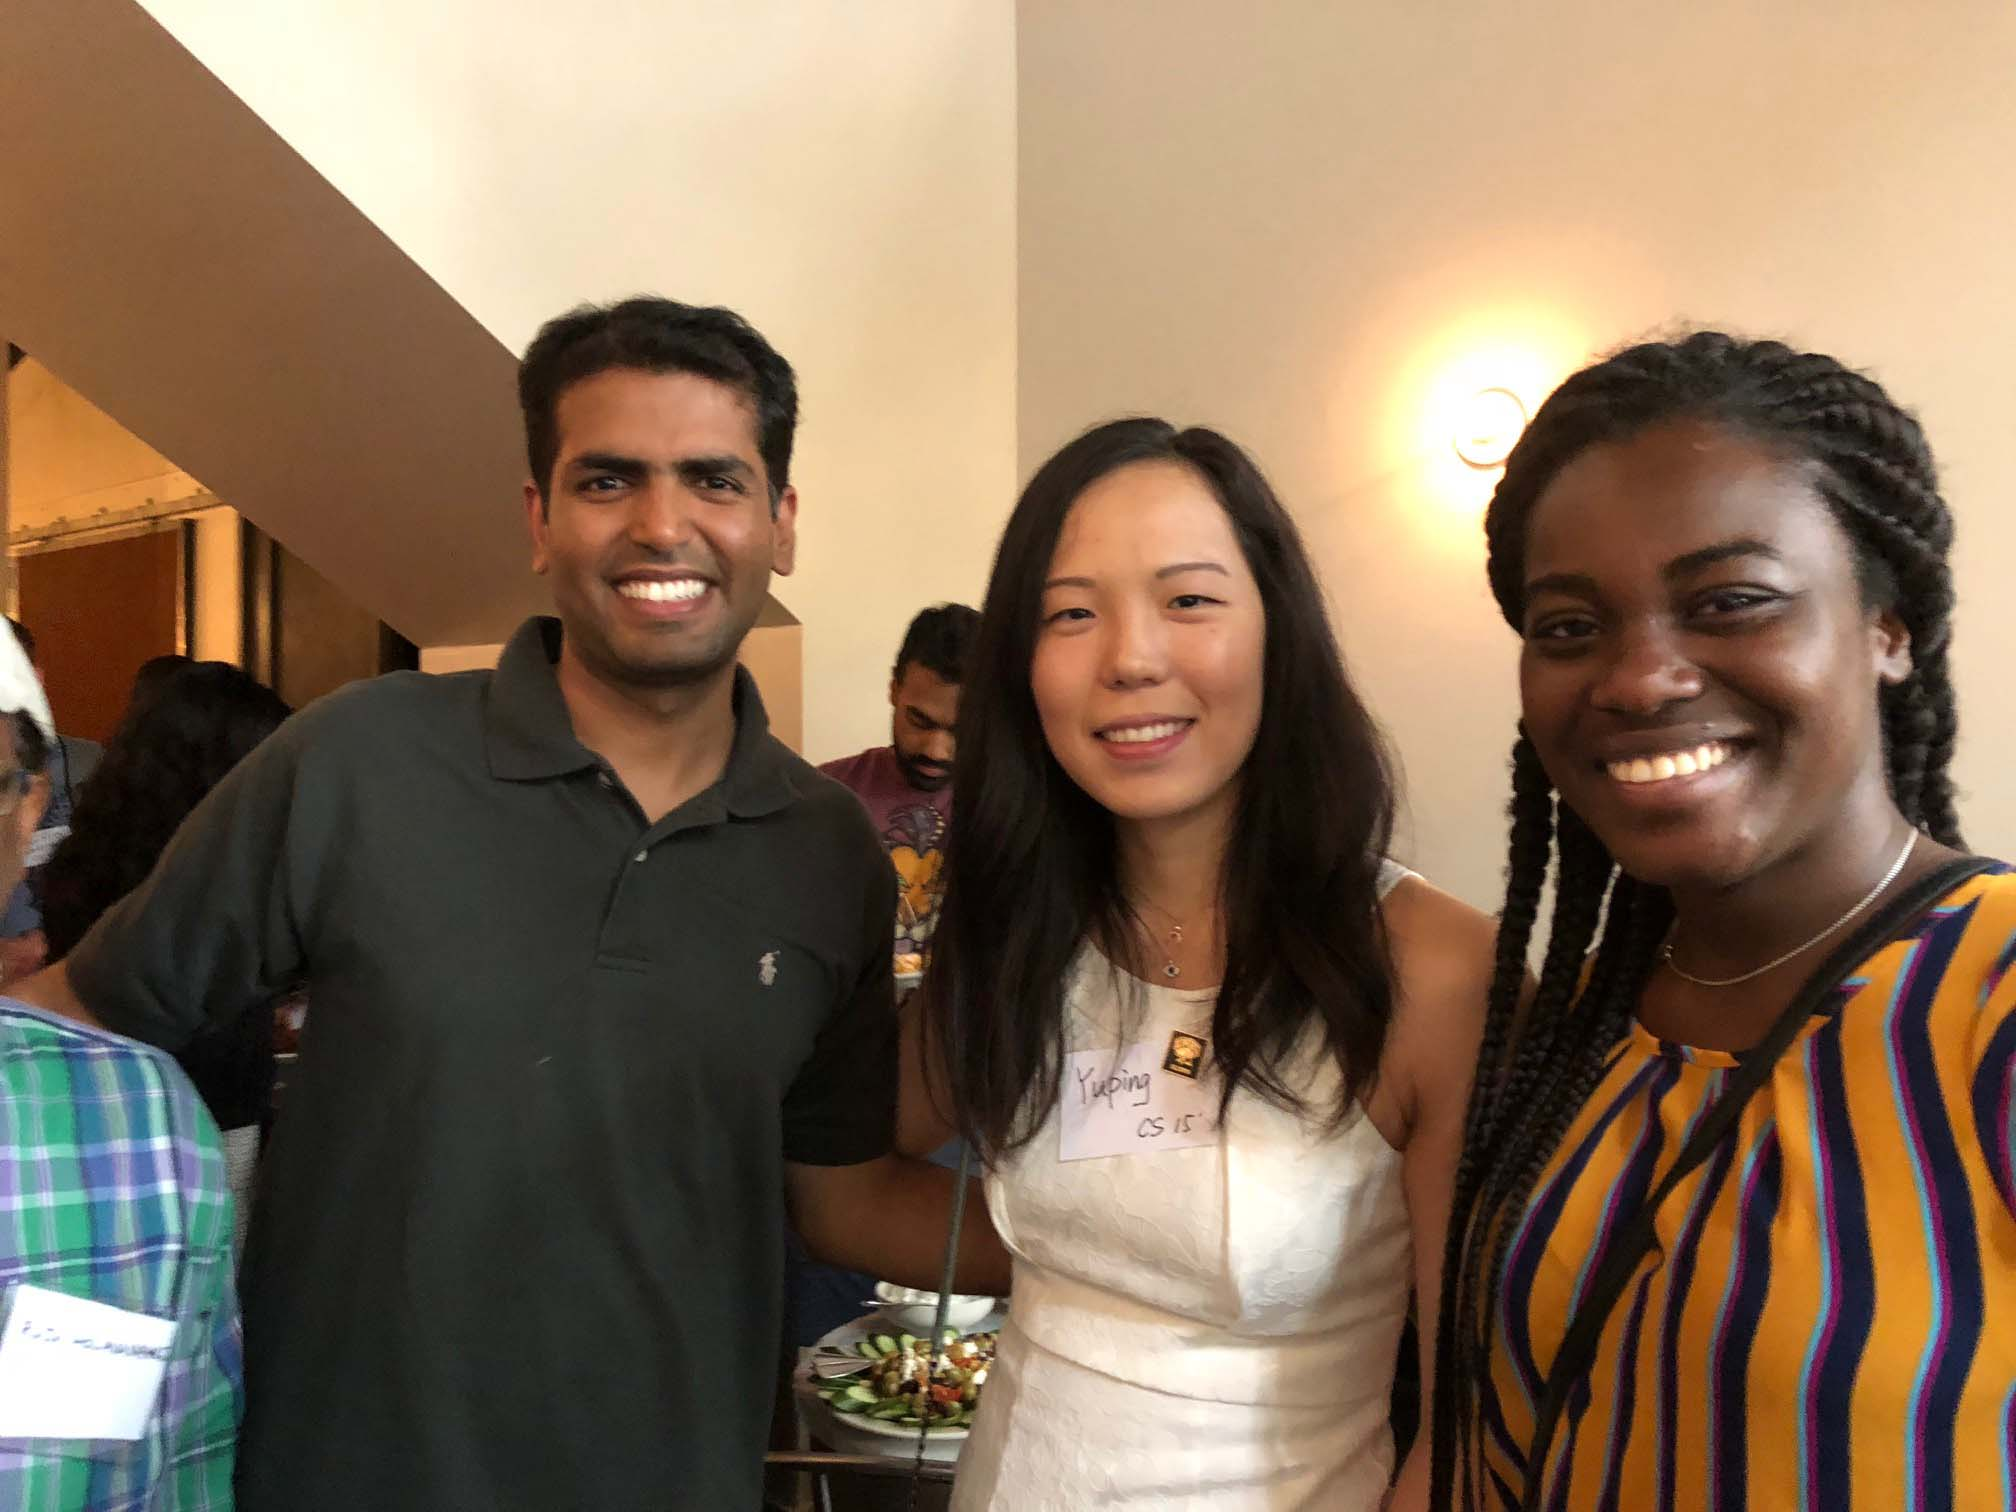 Three alumni smile together at Seattle networking event